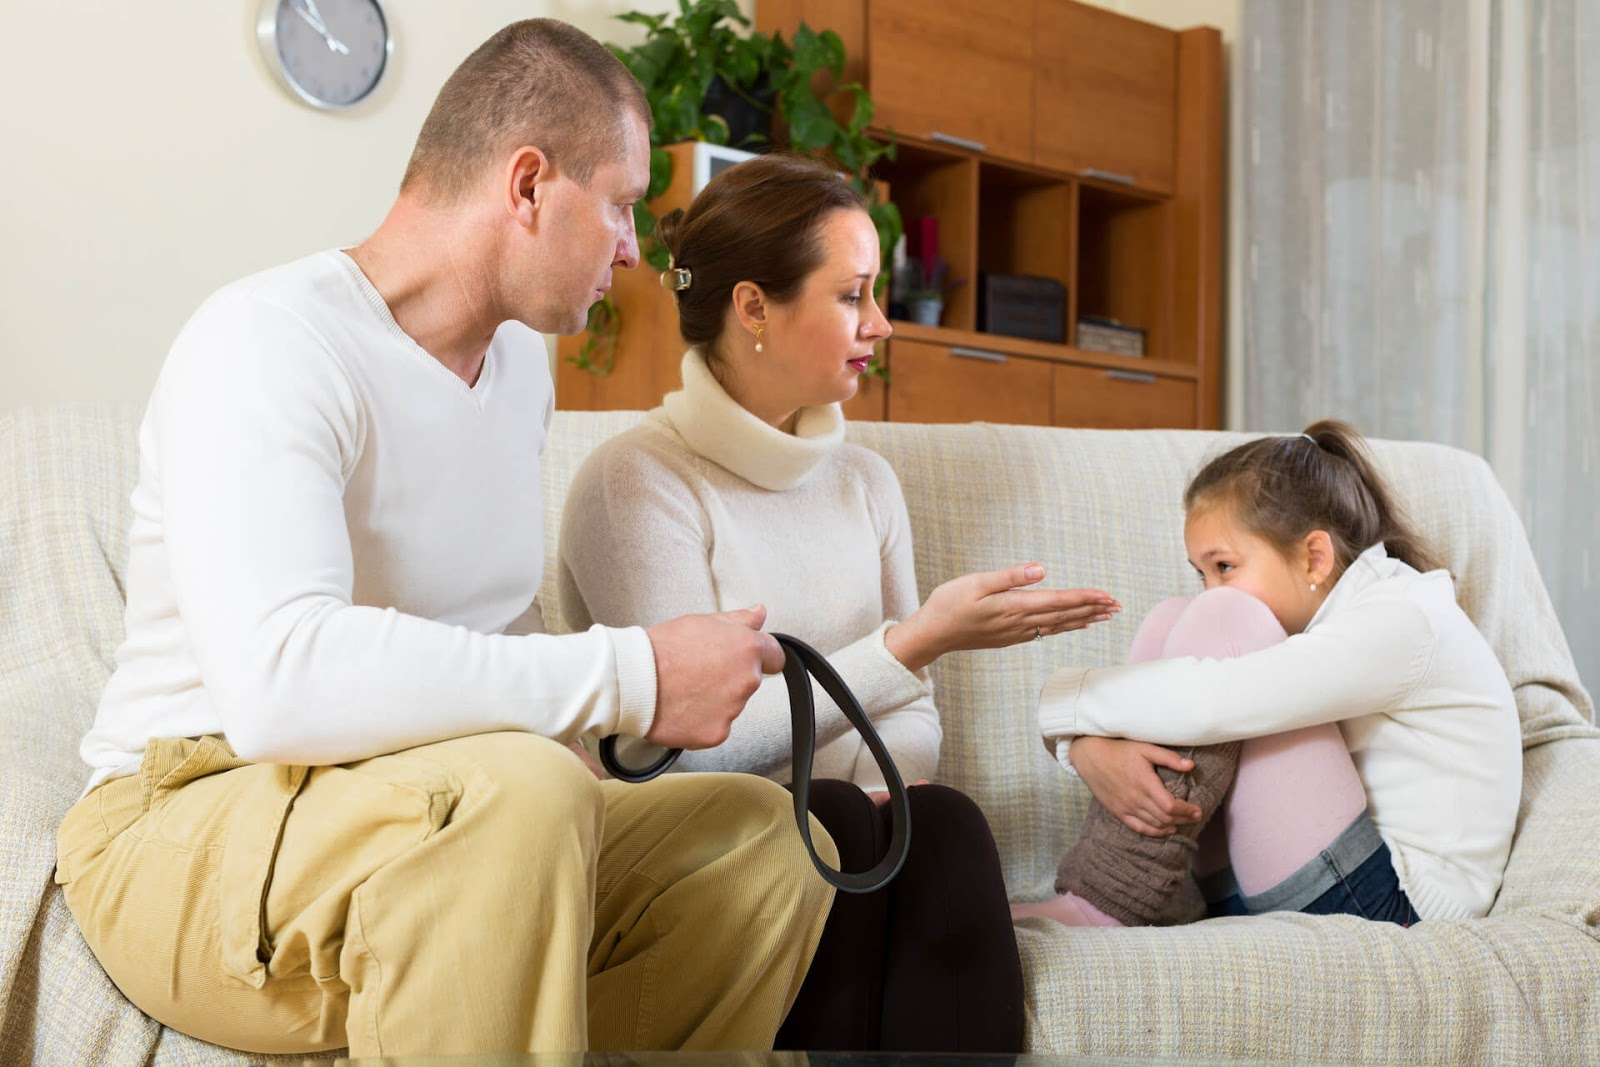 Parents lecturing their daughter on the couch